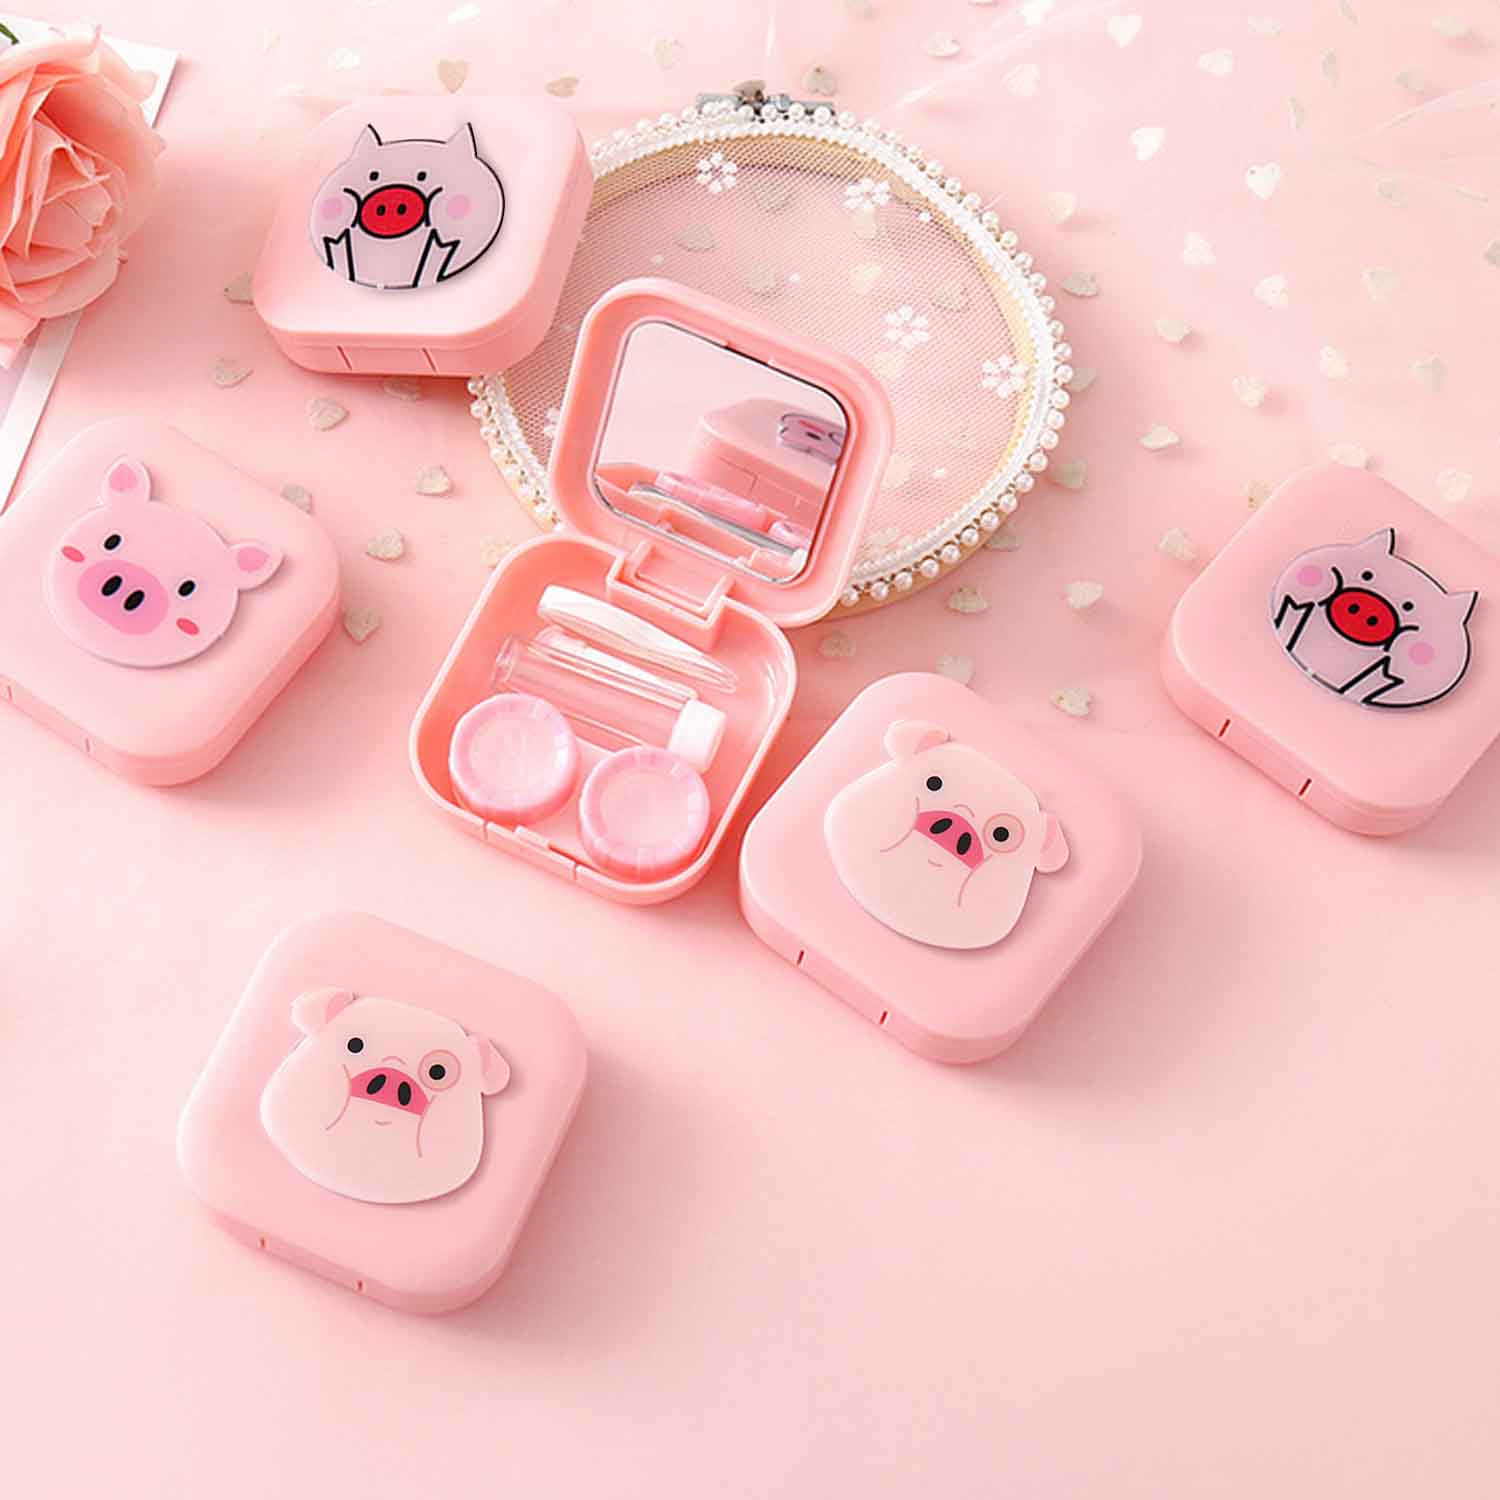 Contact Lens Case Storage Box Container Holder Cute 3D Cartoon Pig Styled With Tweezers Stick Bottle Lens Box Contact Lenses Box